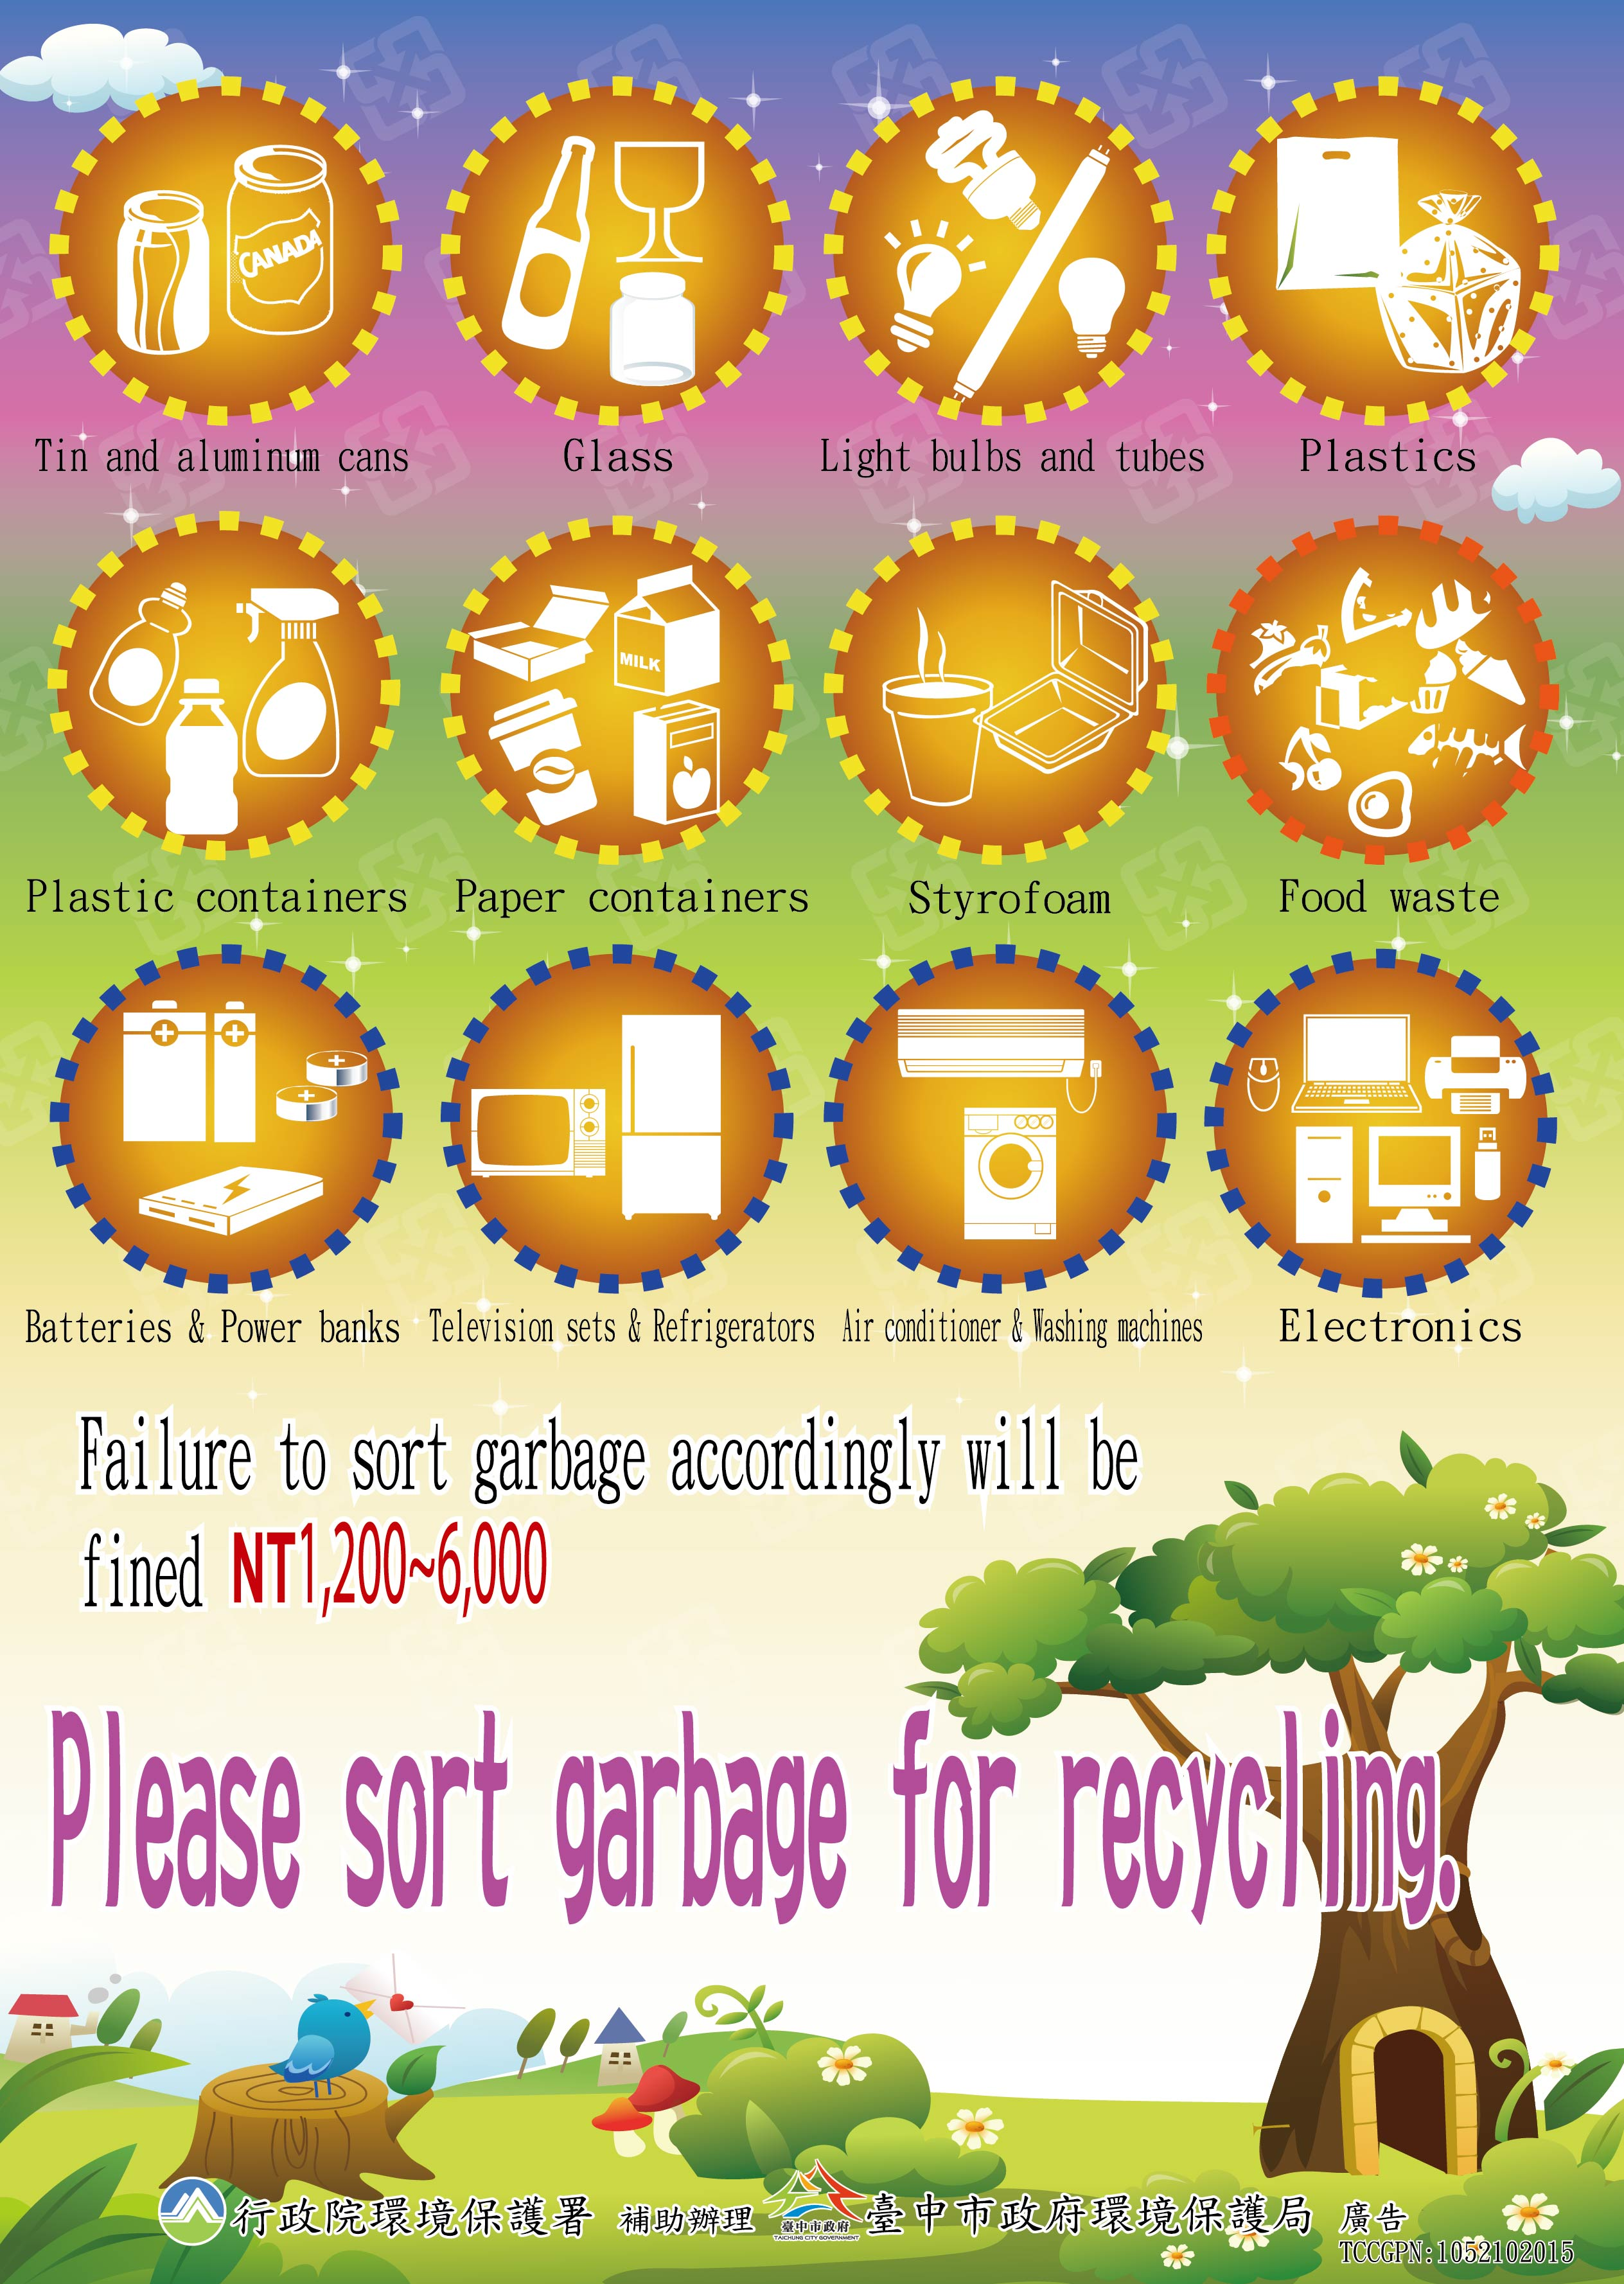 Please sort garbage for recycling.(English)